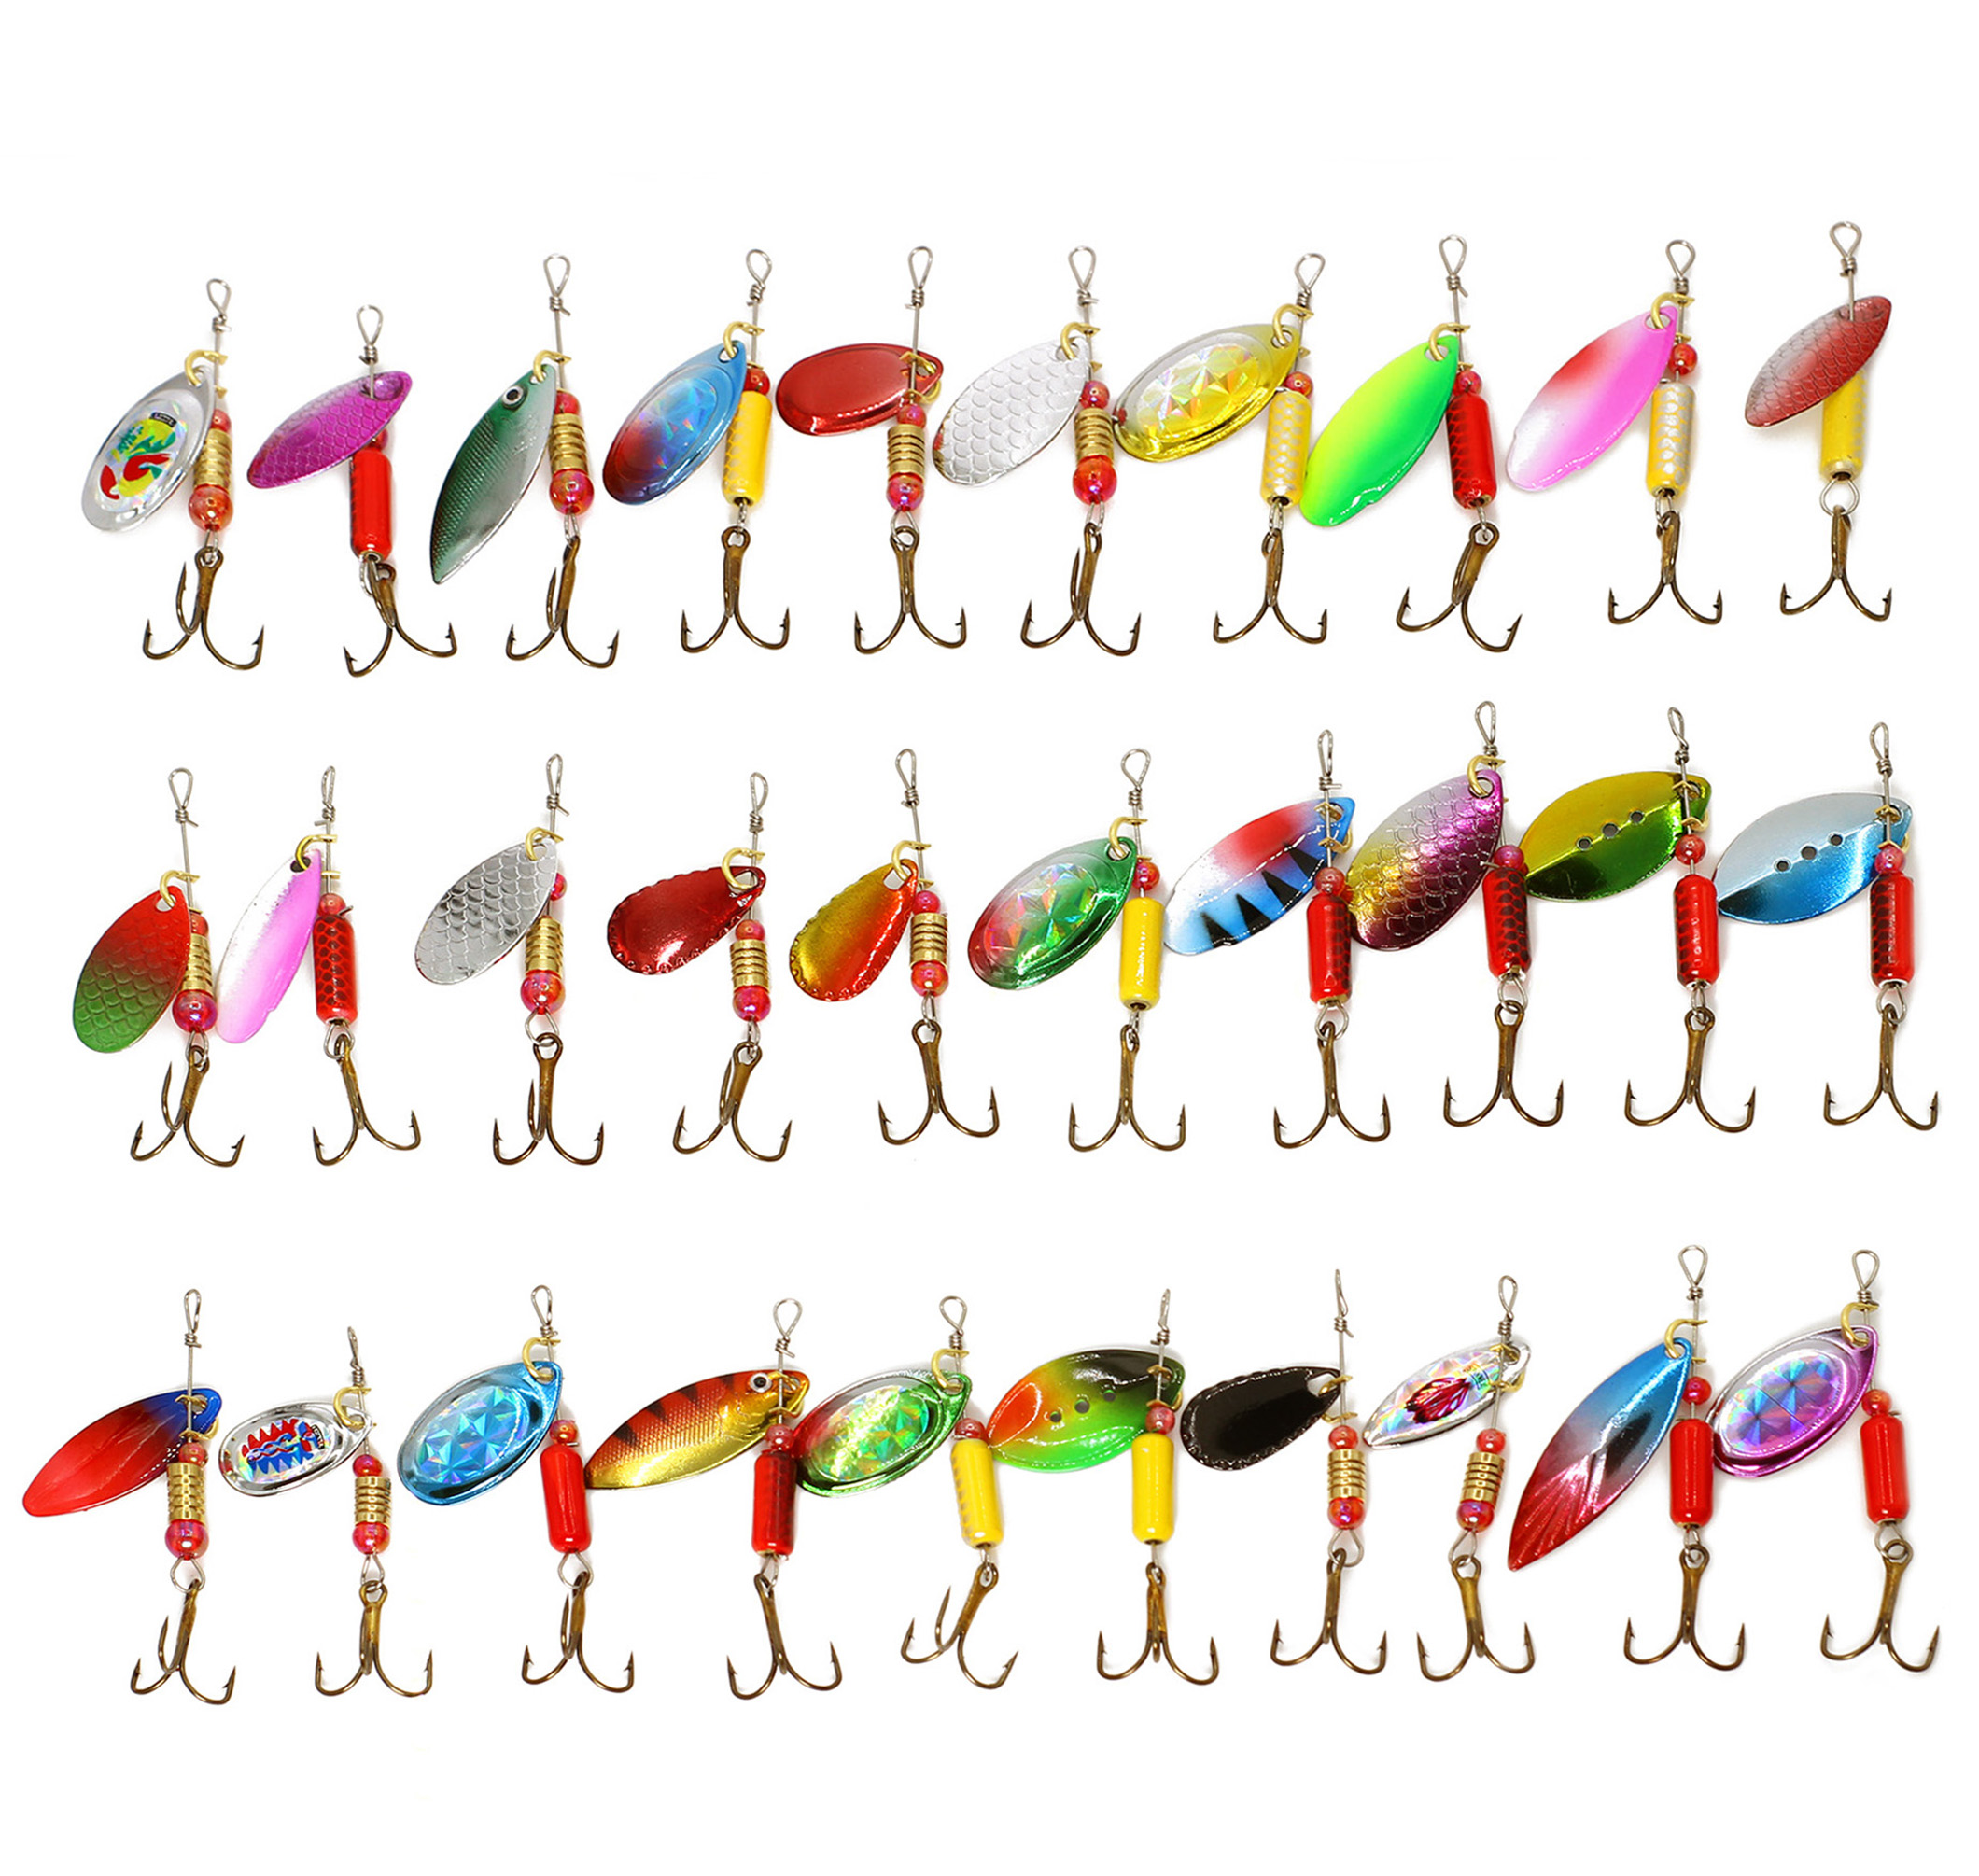 Lotfancy inc on walmart marketplace marketplace pulse for Walmart fishing spinners